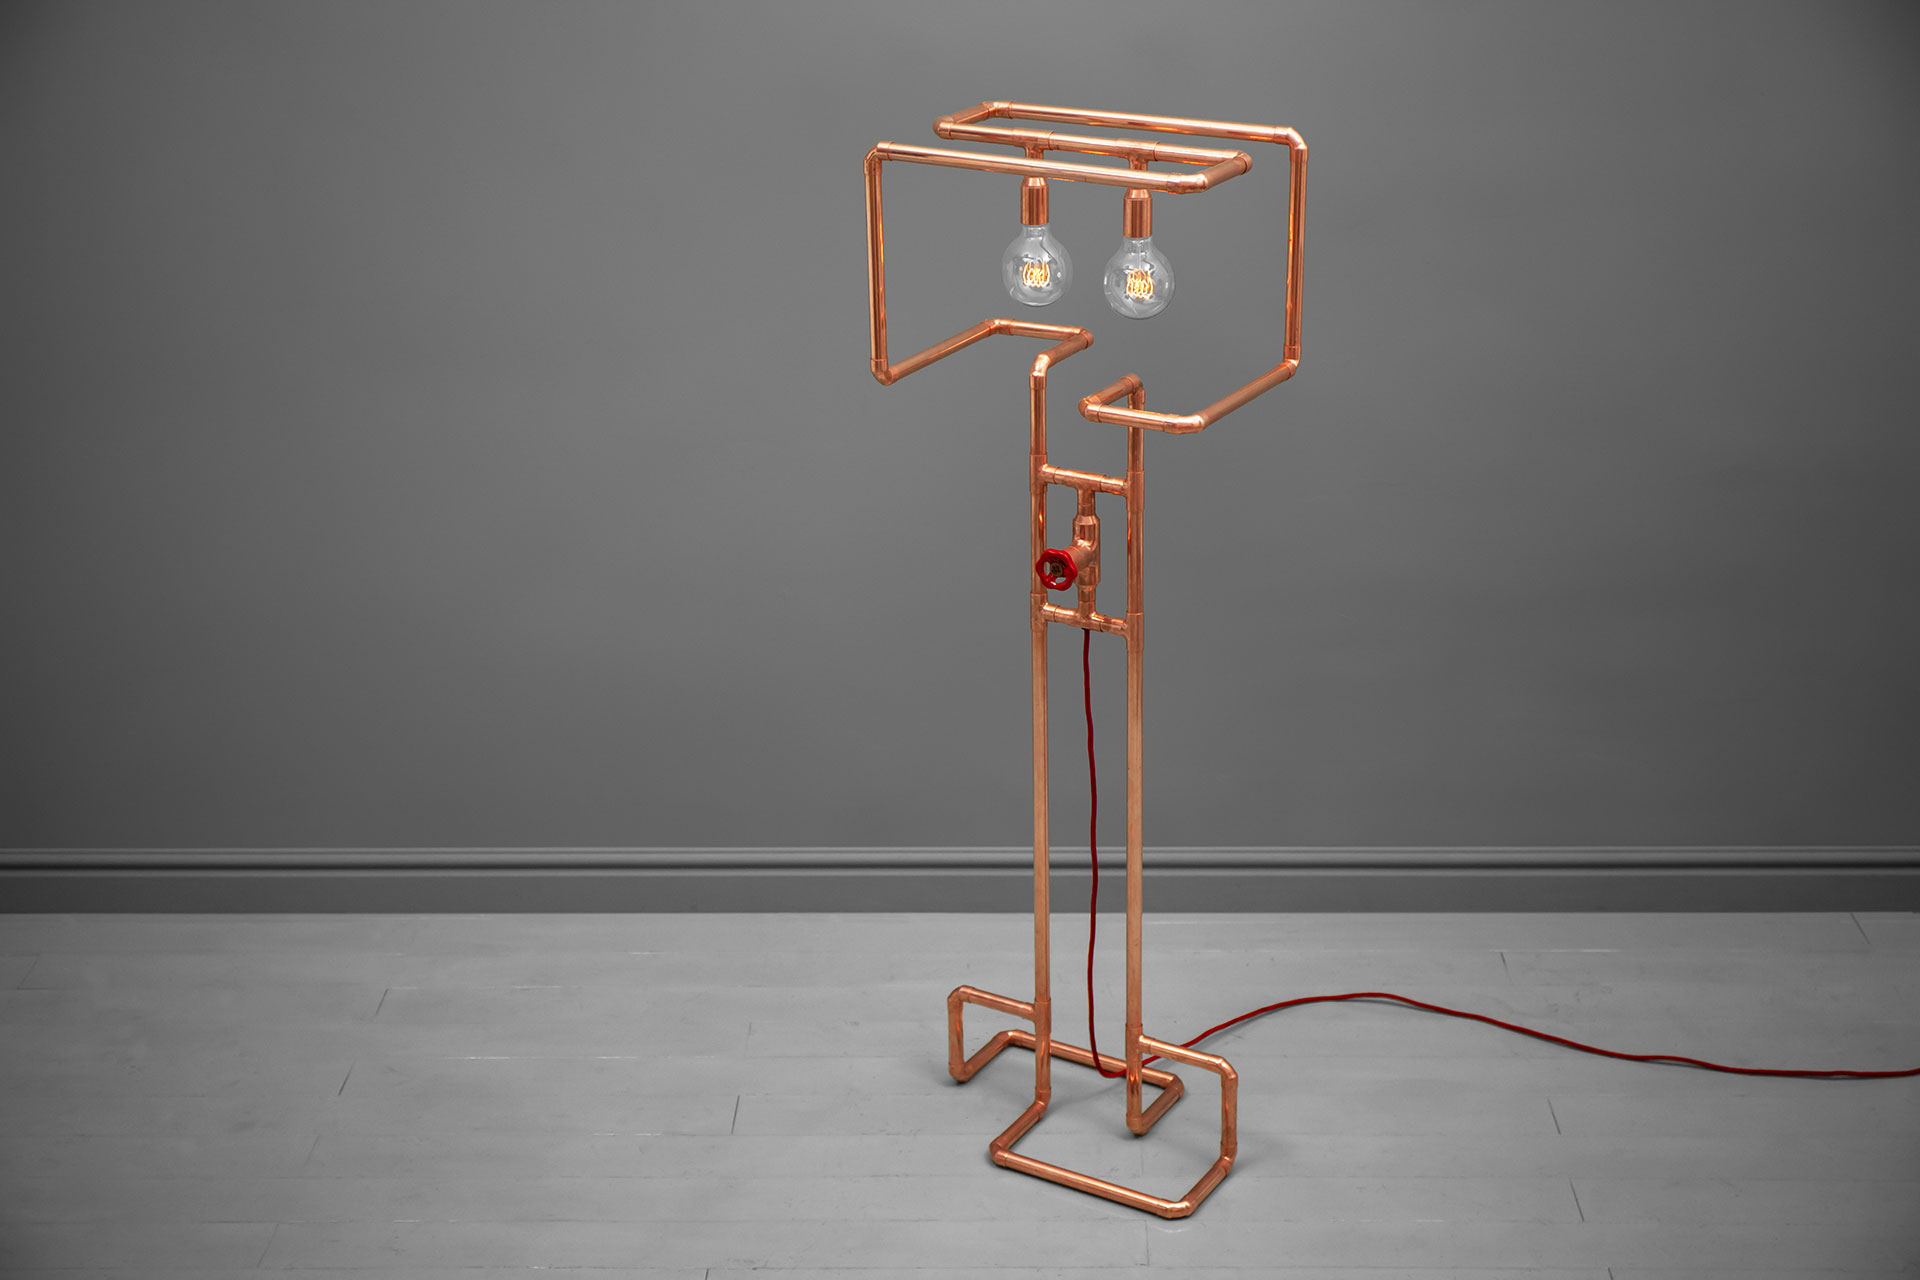 Copper pipes floor lamp with retro Edison bulbs inspired by steampunk design